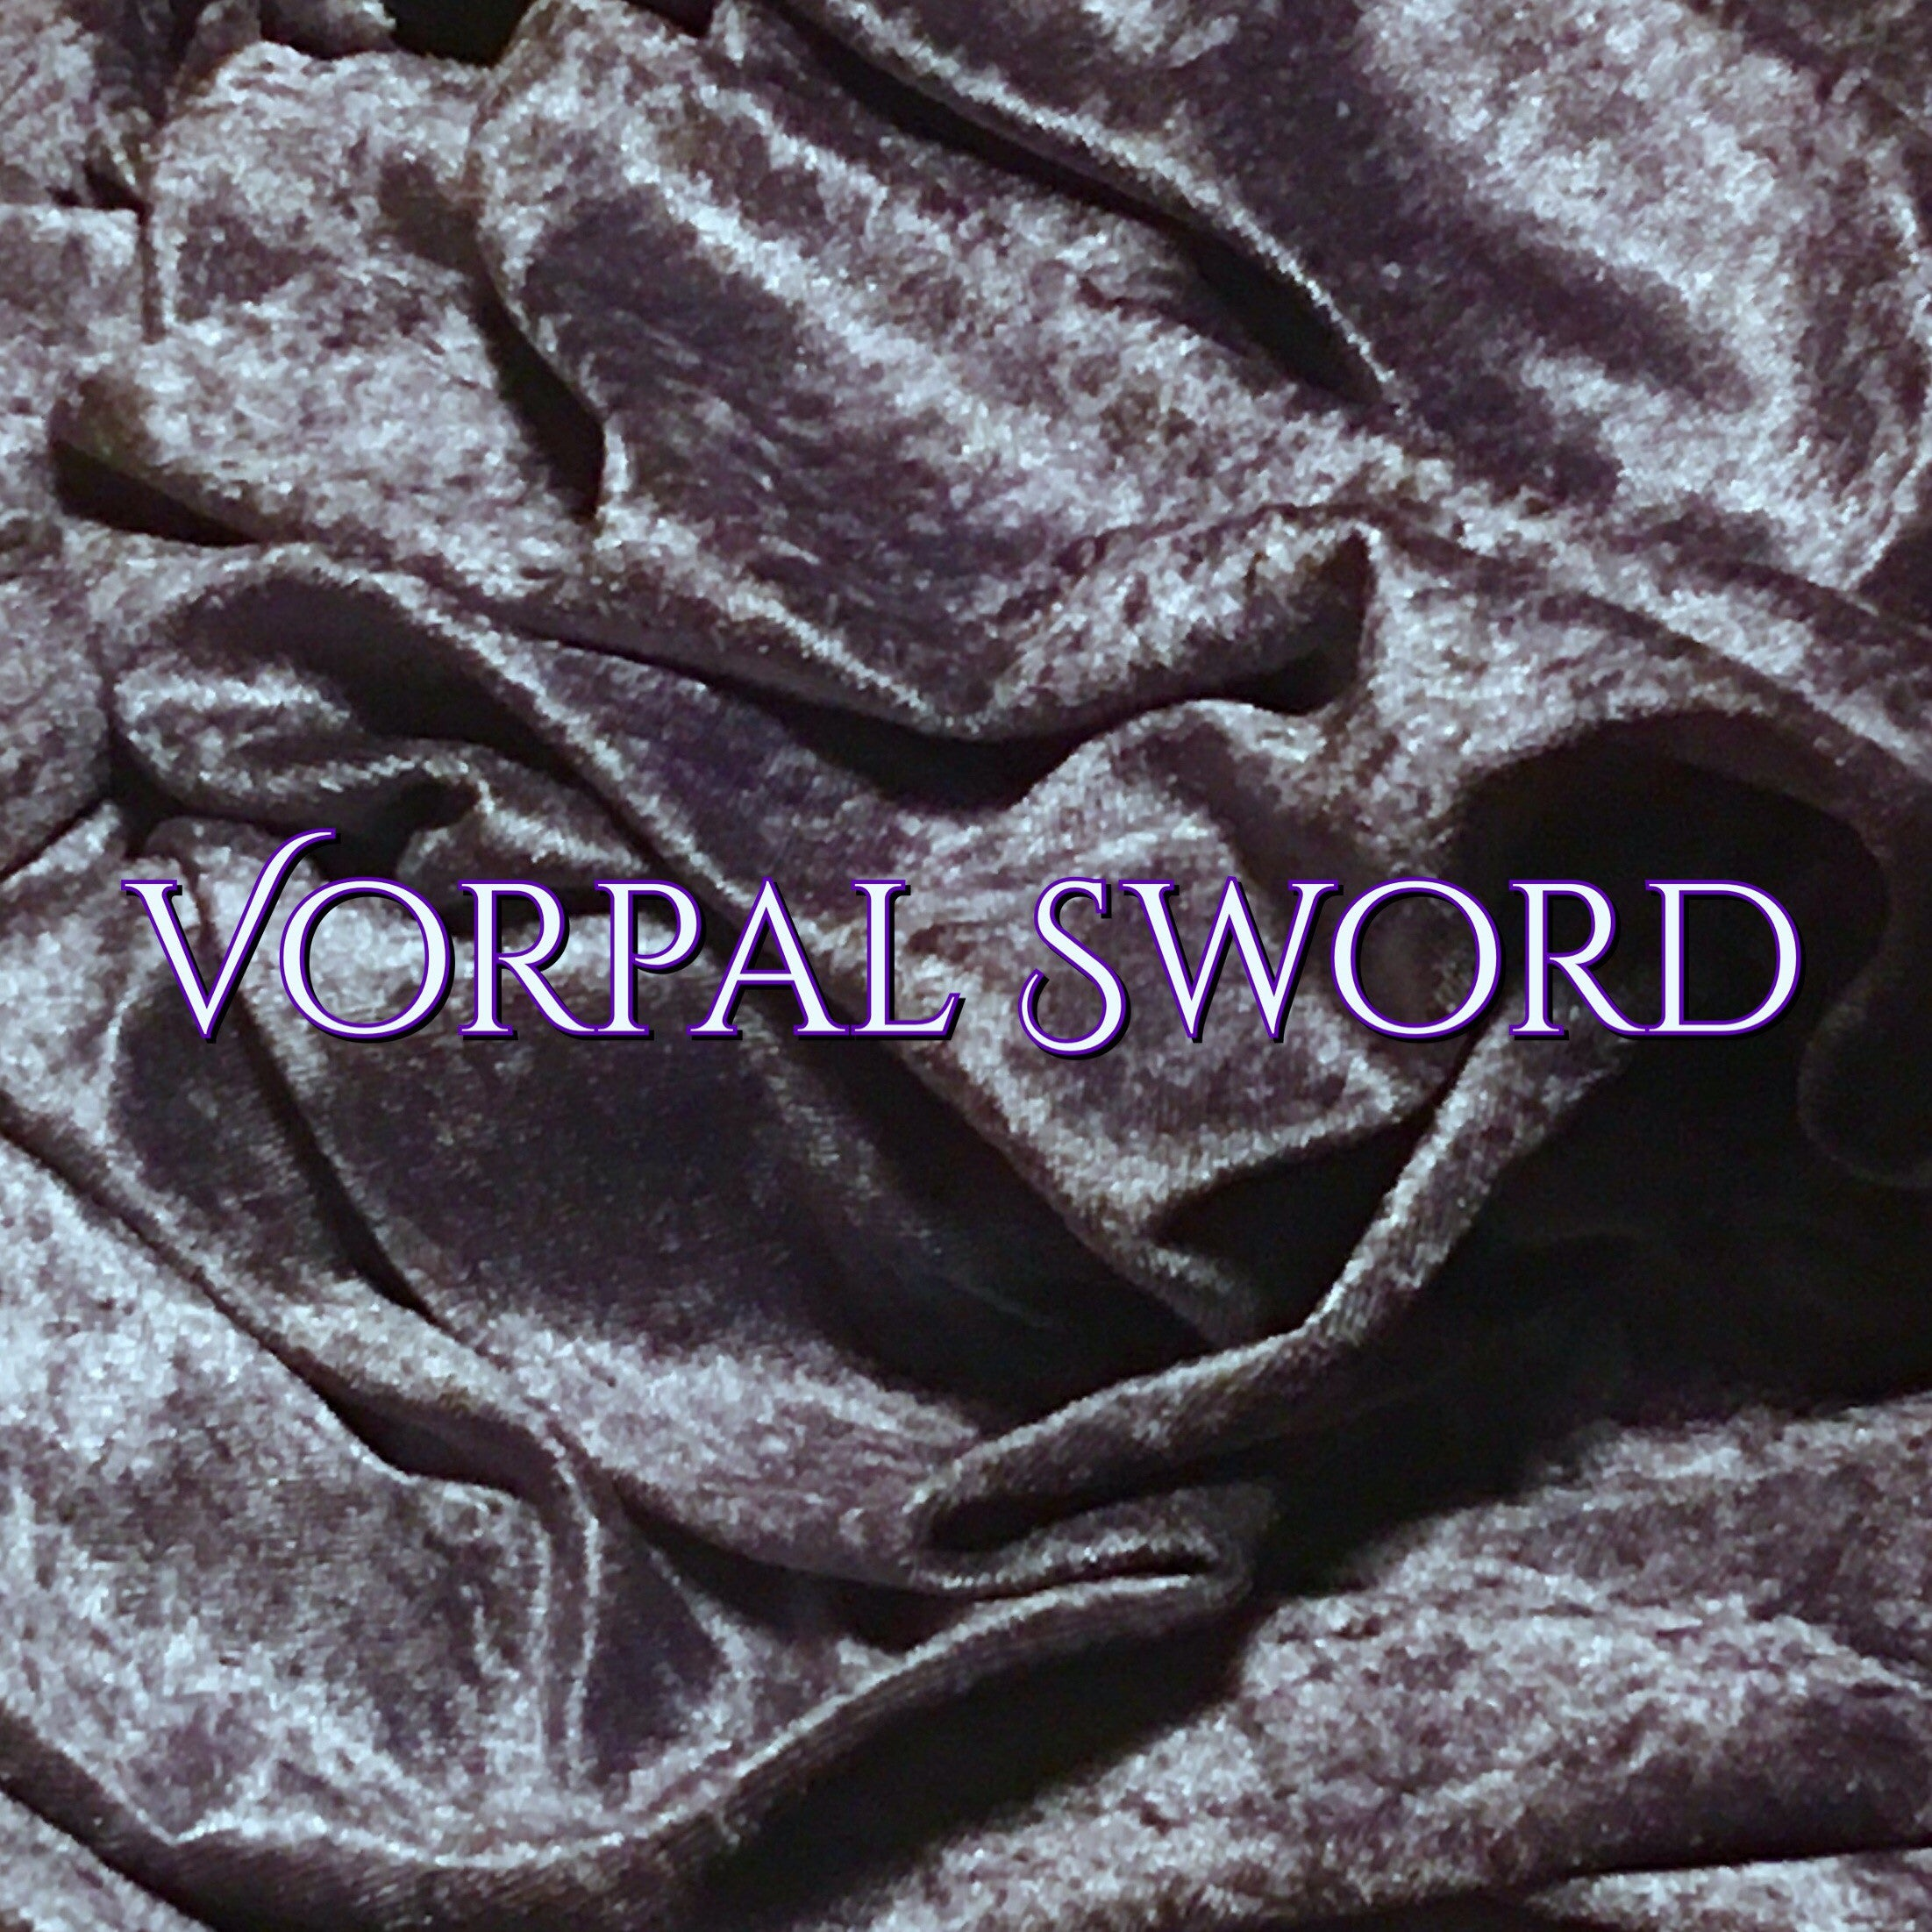 Vorpal Sword - Luxury Crushed Velvet